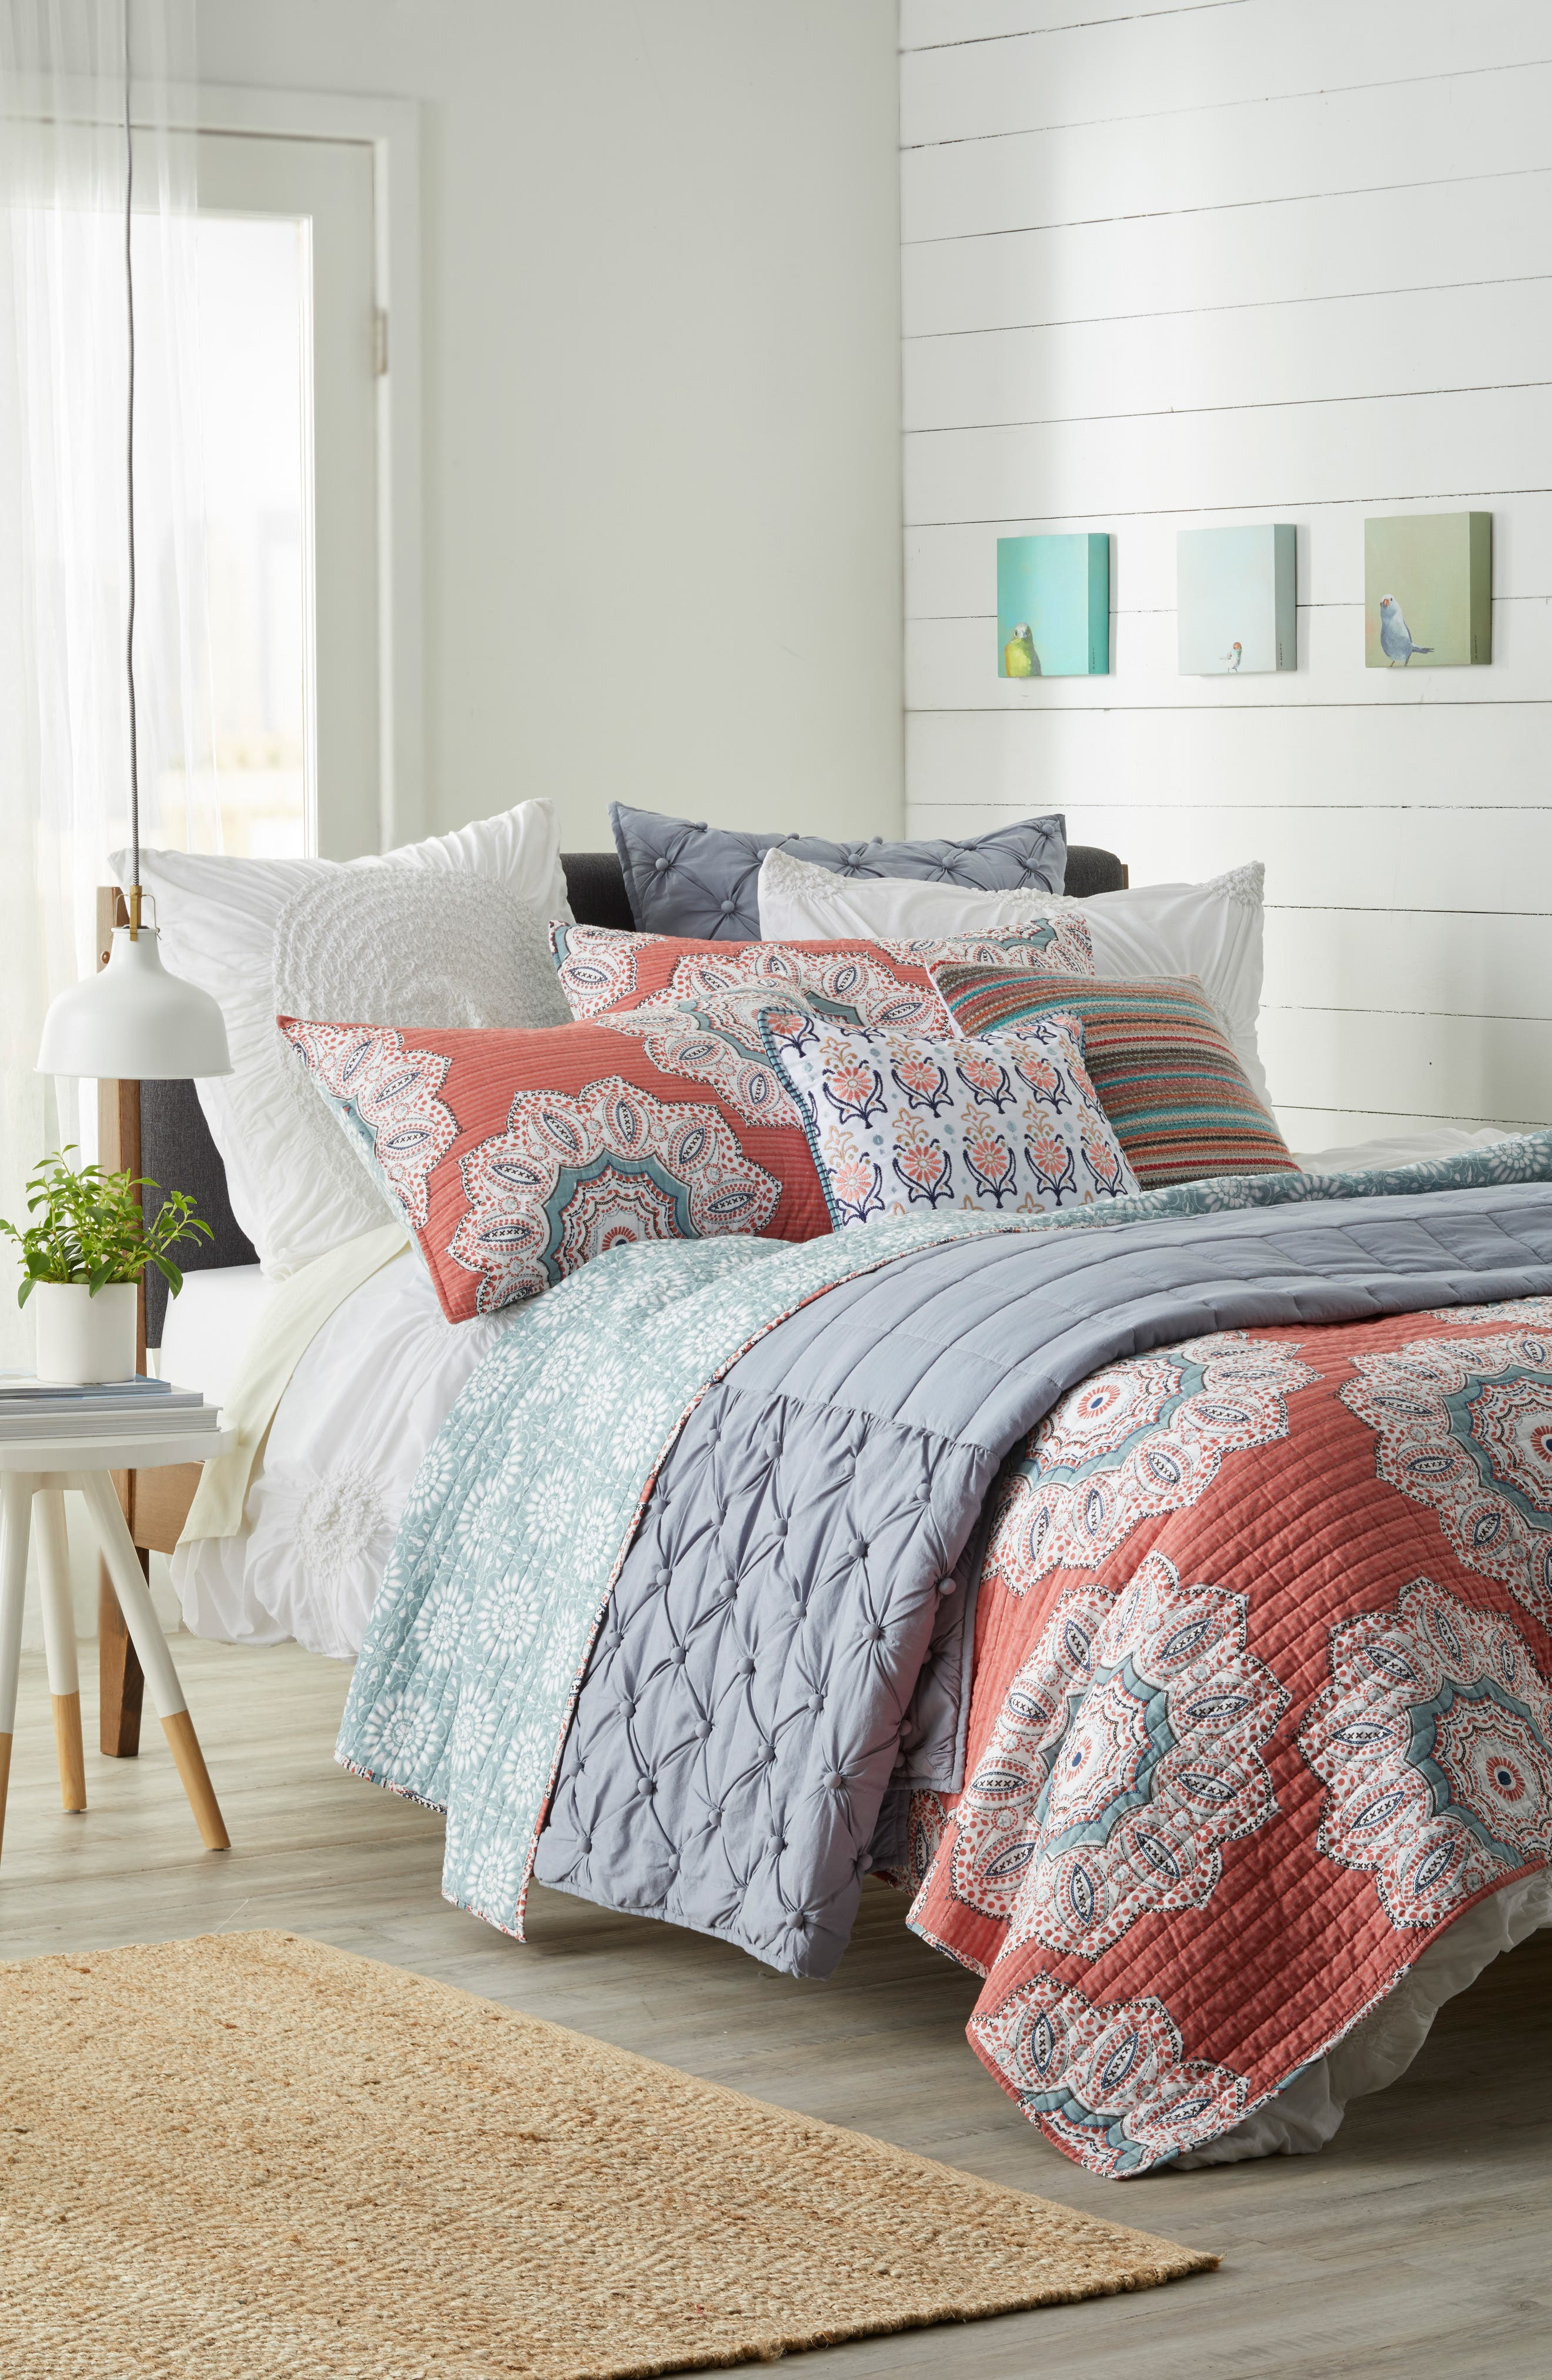 'Chloe' Duvet Cover,                             Alternate thumbnail 2, color,                             White